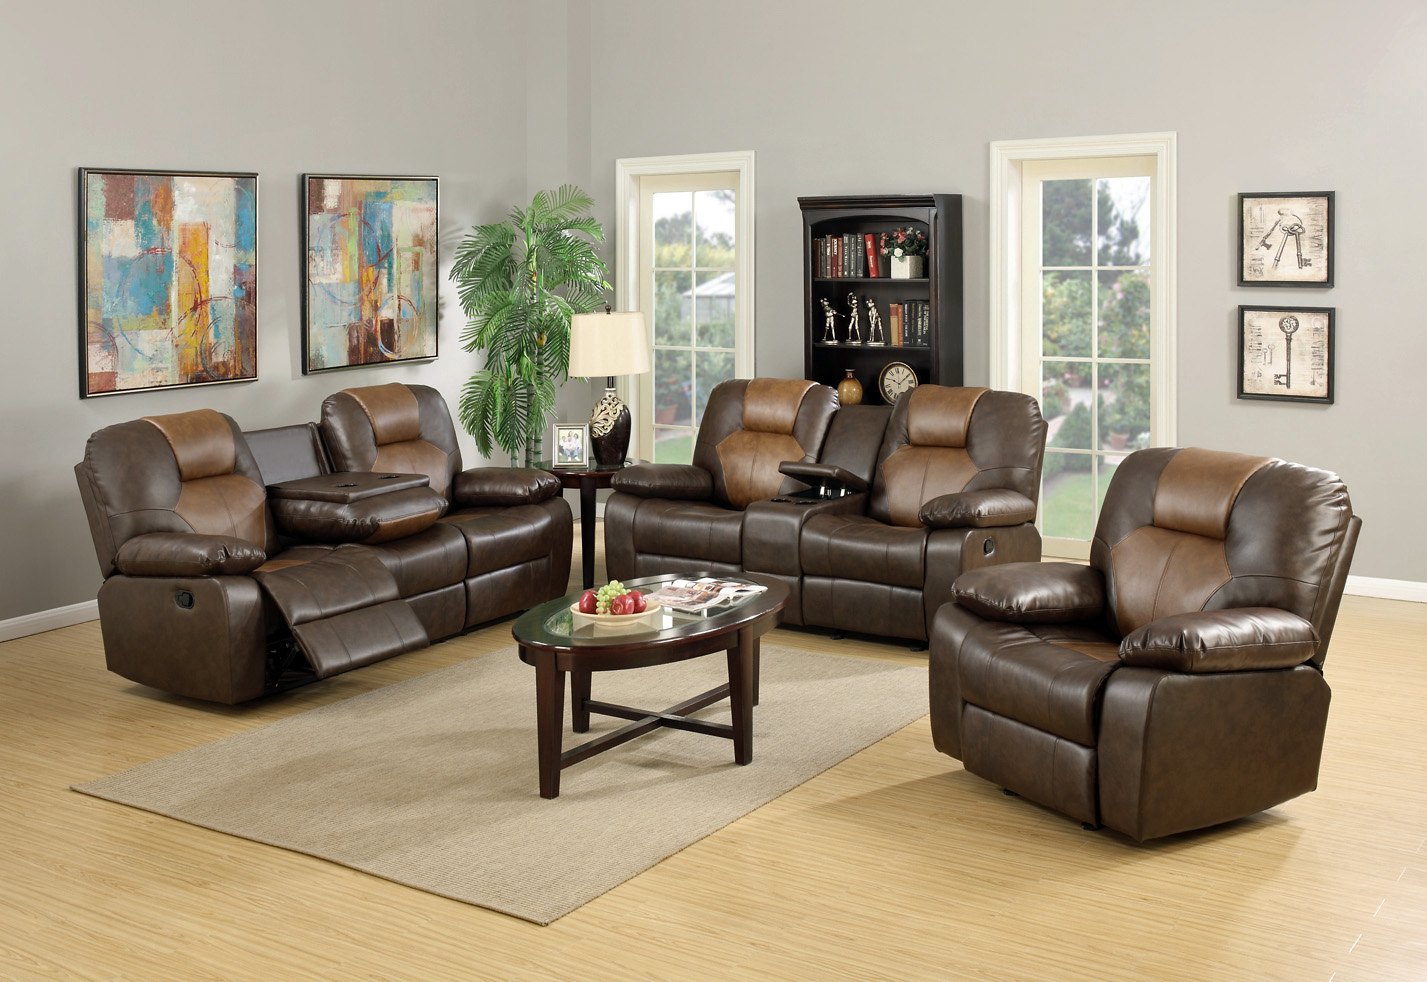 Mac 39 s furniture two tone reclining leather sofa and loveseat for Best rated living room furniture